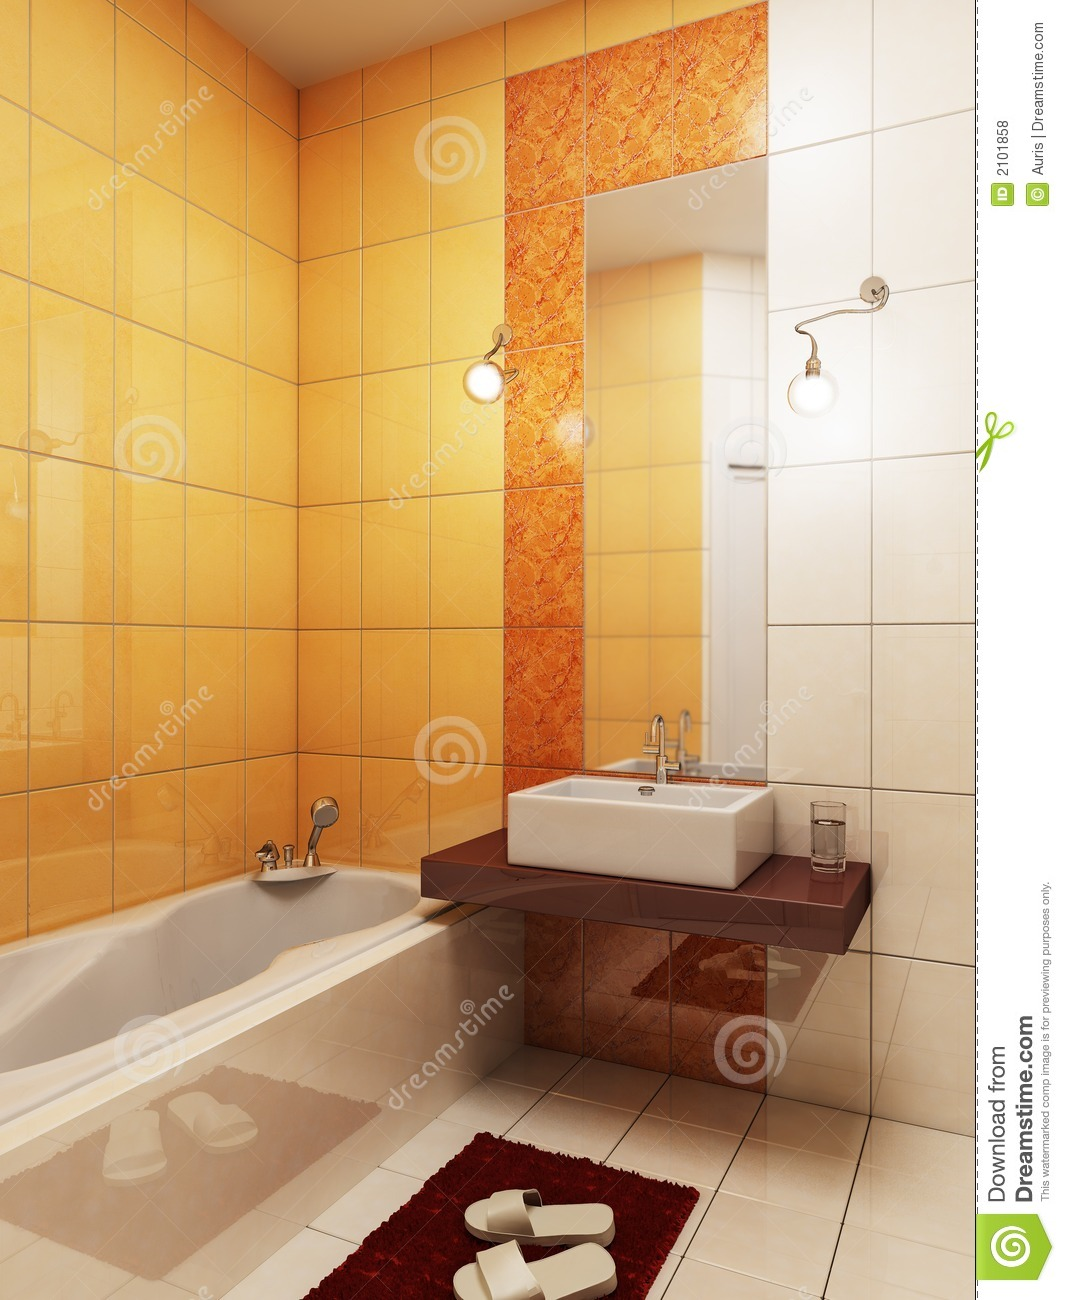 3d Bathroom Rendering Royalty Free Stock Photos Image